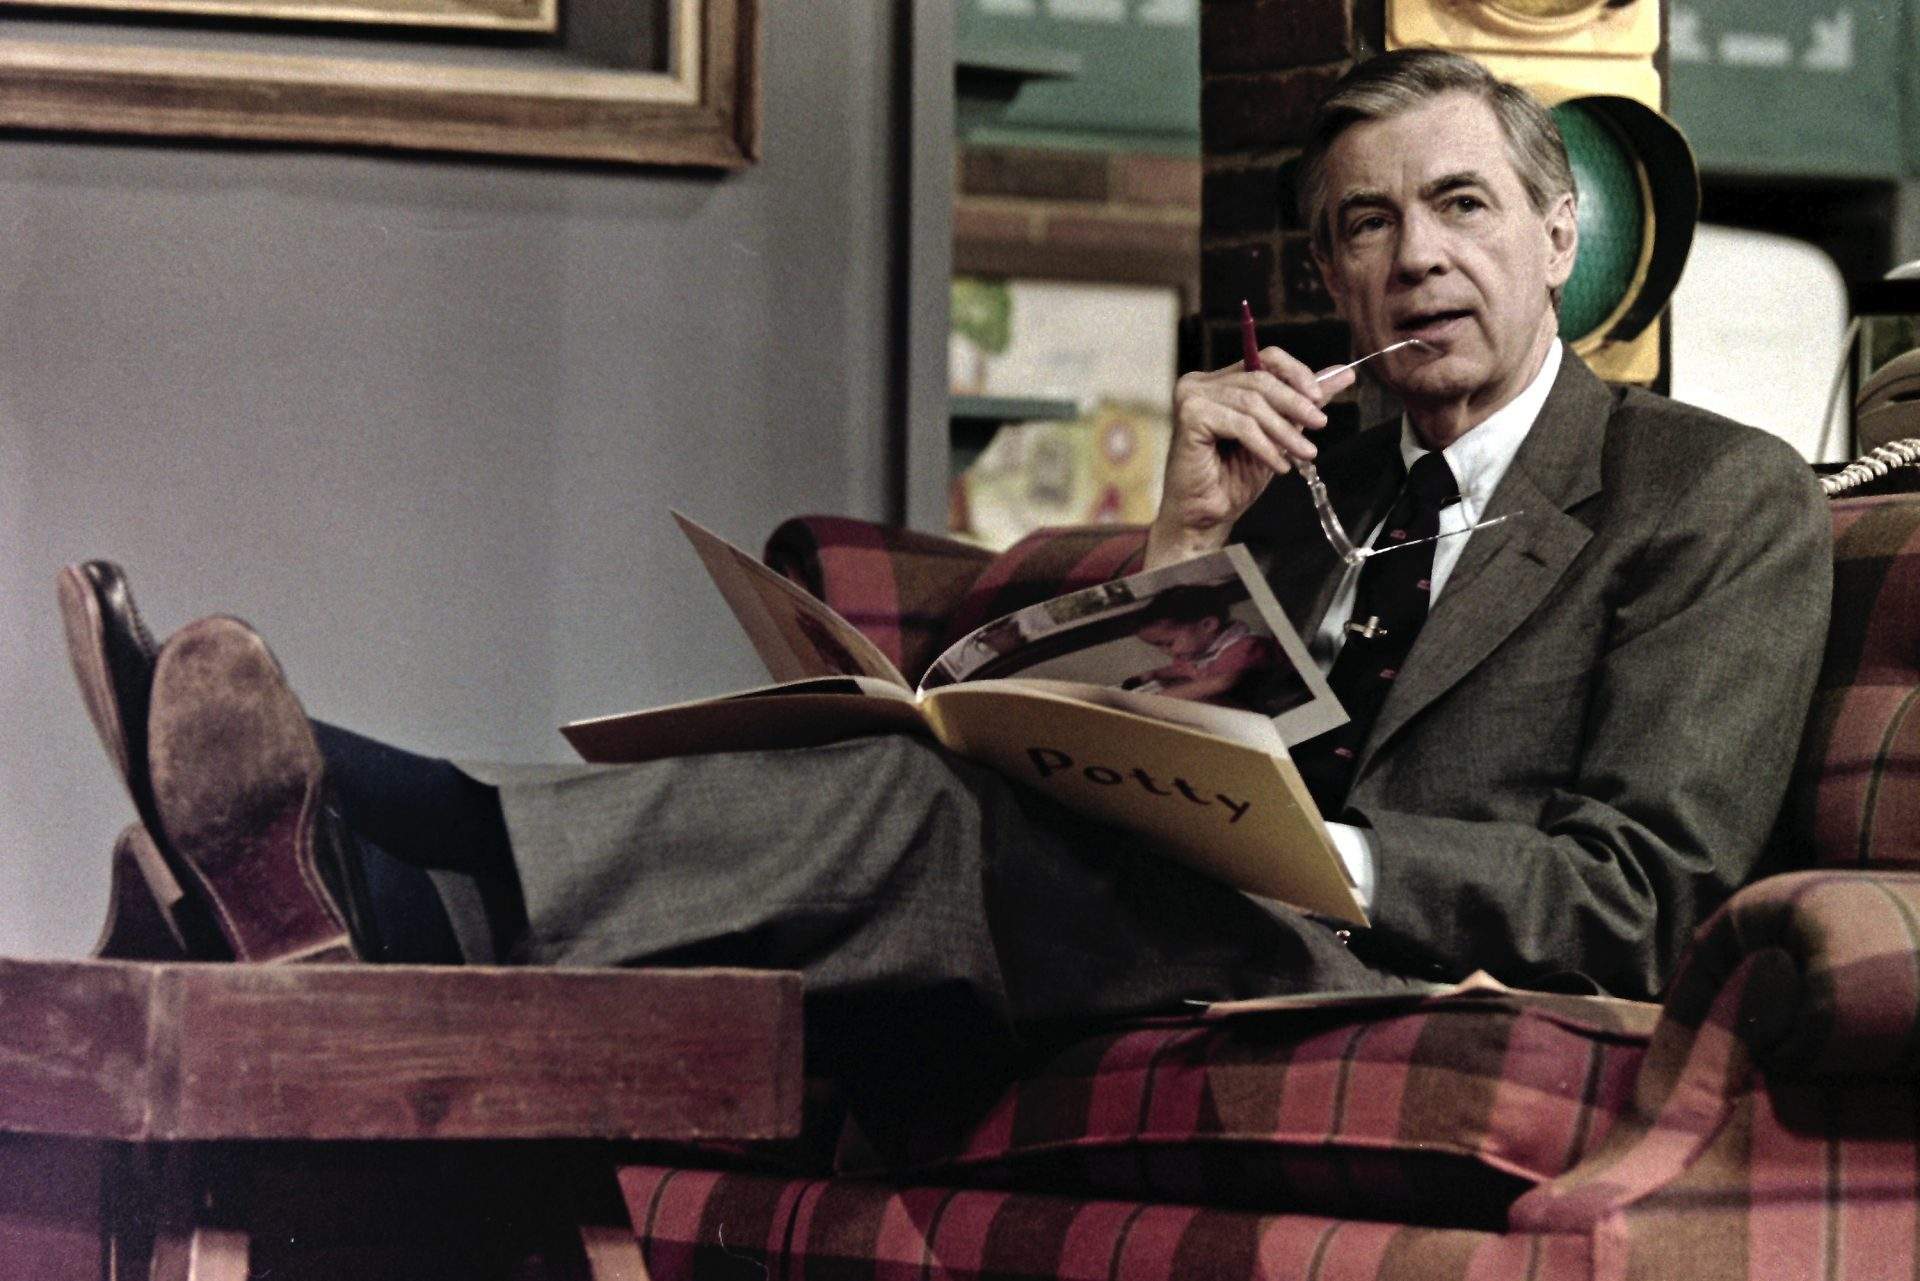 This June 28, 1989 file photo shows Fred Rogers making notes between takes on the set of his children's television program, Mister Rogers' Neighborhood, in Pittsburgh.